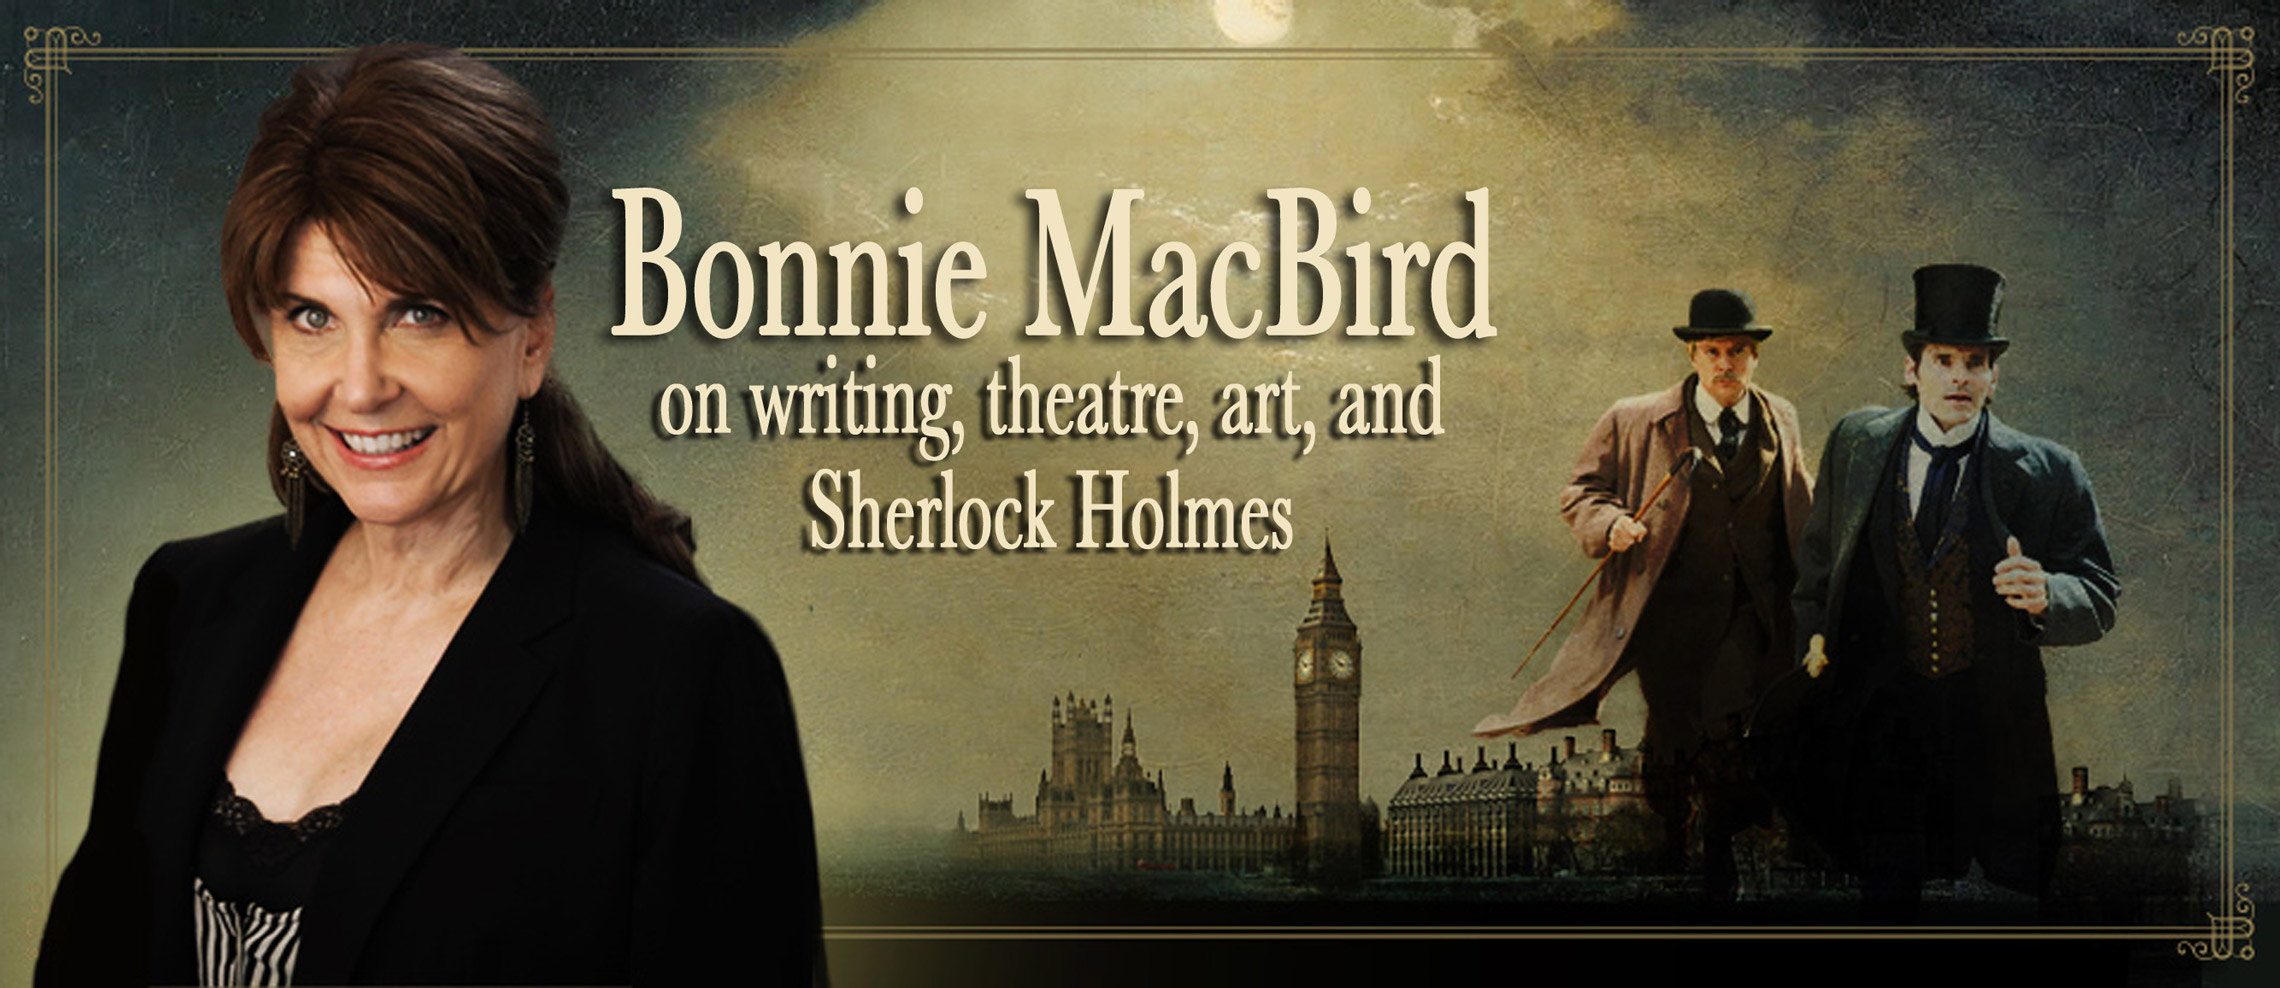 Bonnie MacBird: Unabashed enthusiasm for writing, theatre, art and Sherlock Holmes